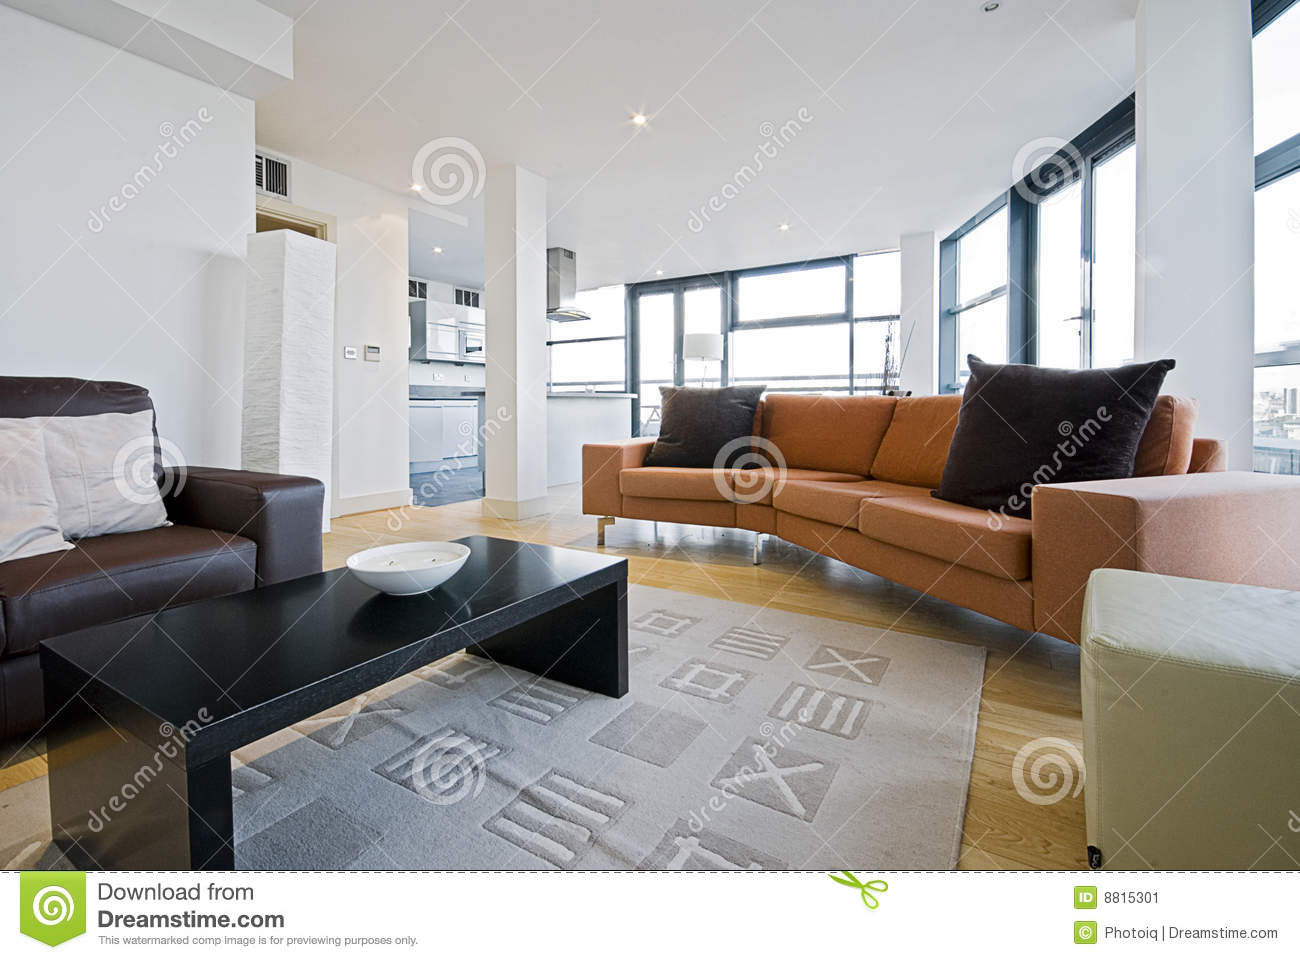 Elegant Royalty Free Stock Photo. Download Living Room With Orange Sofa ... Part 24